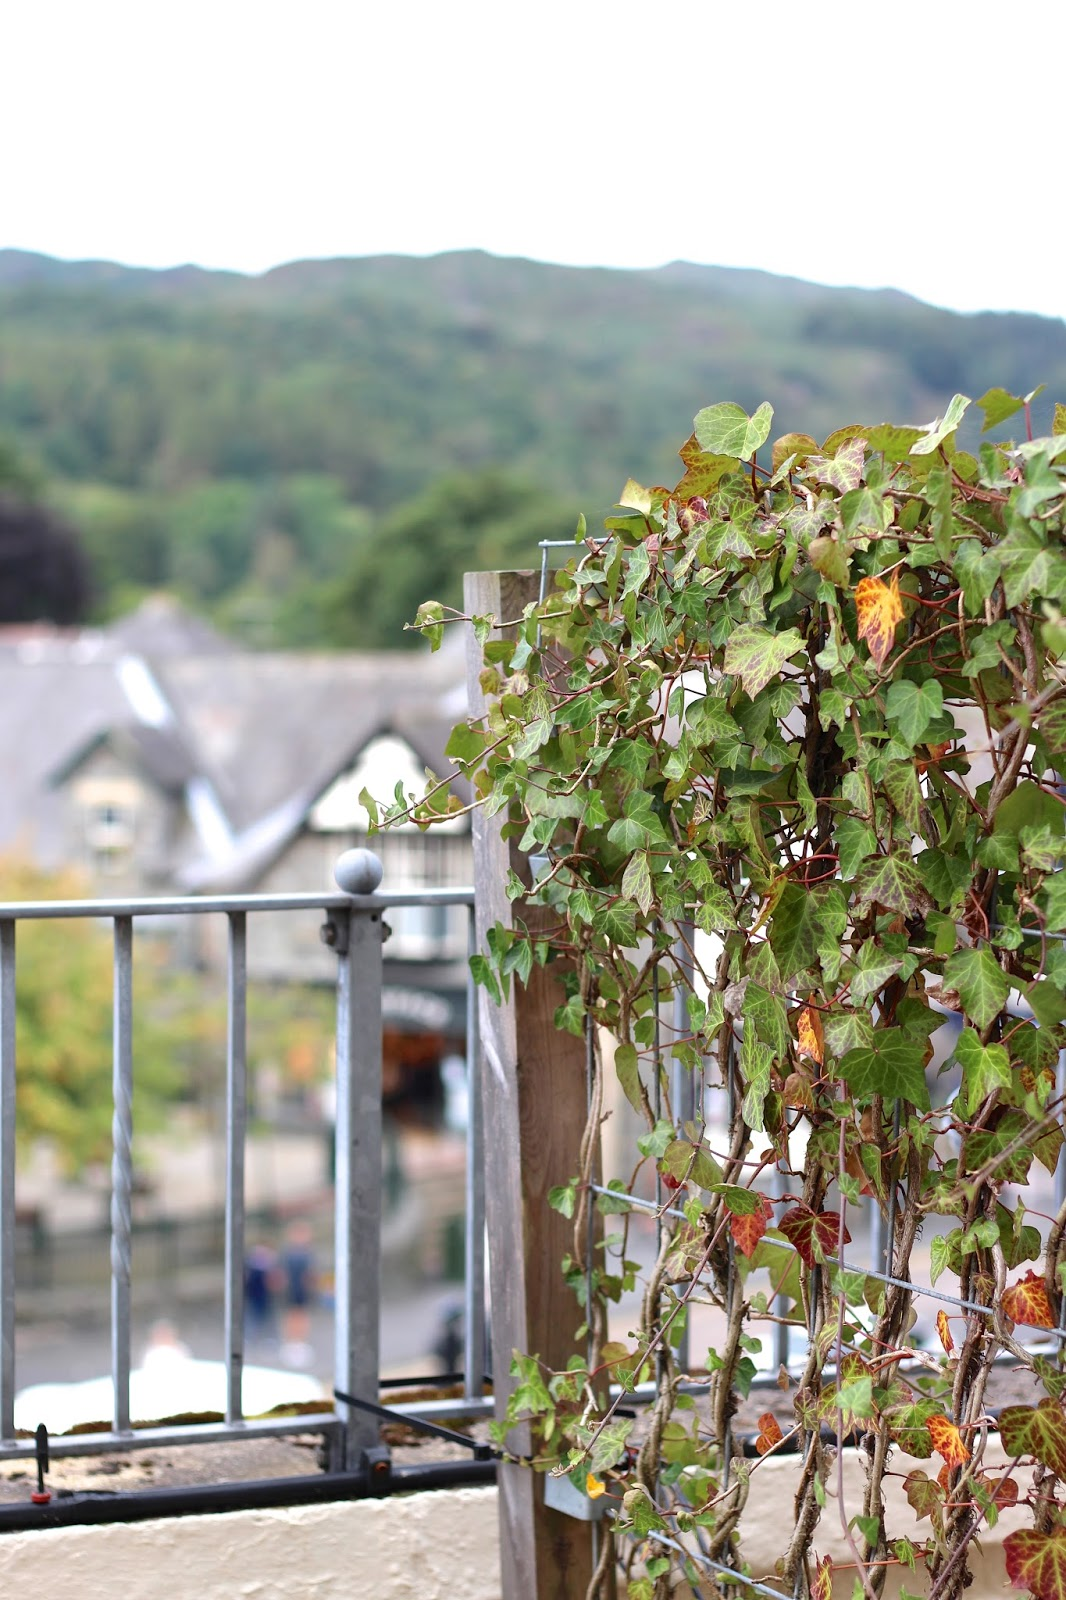 Balcony view from the Ambleside Salutation hotel